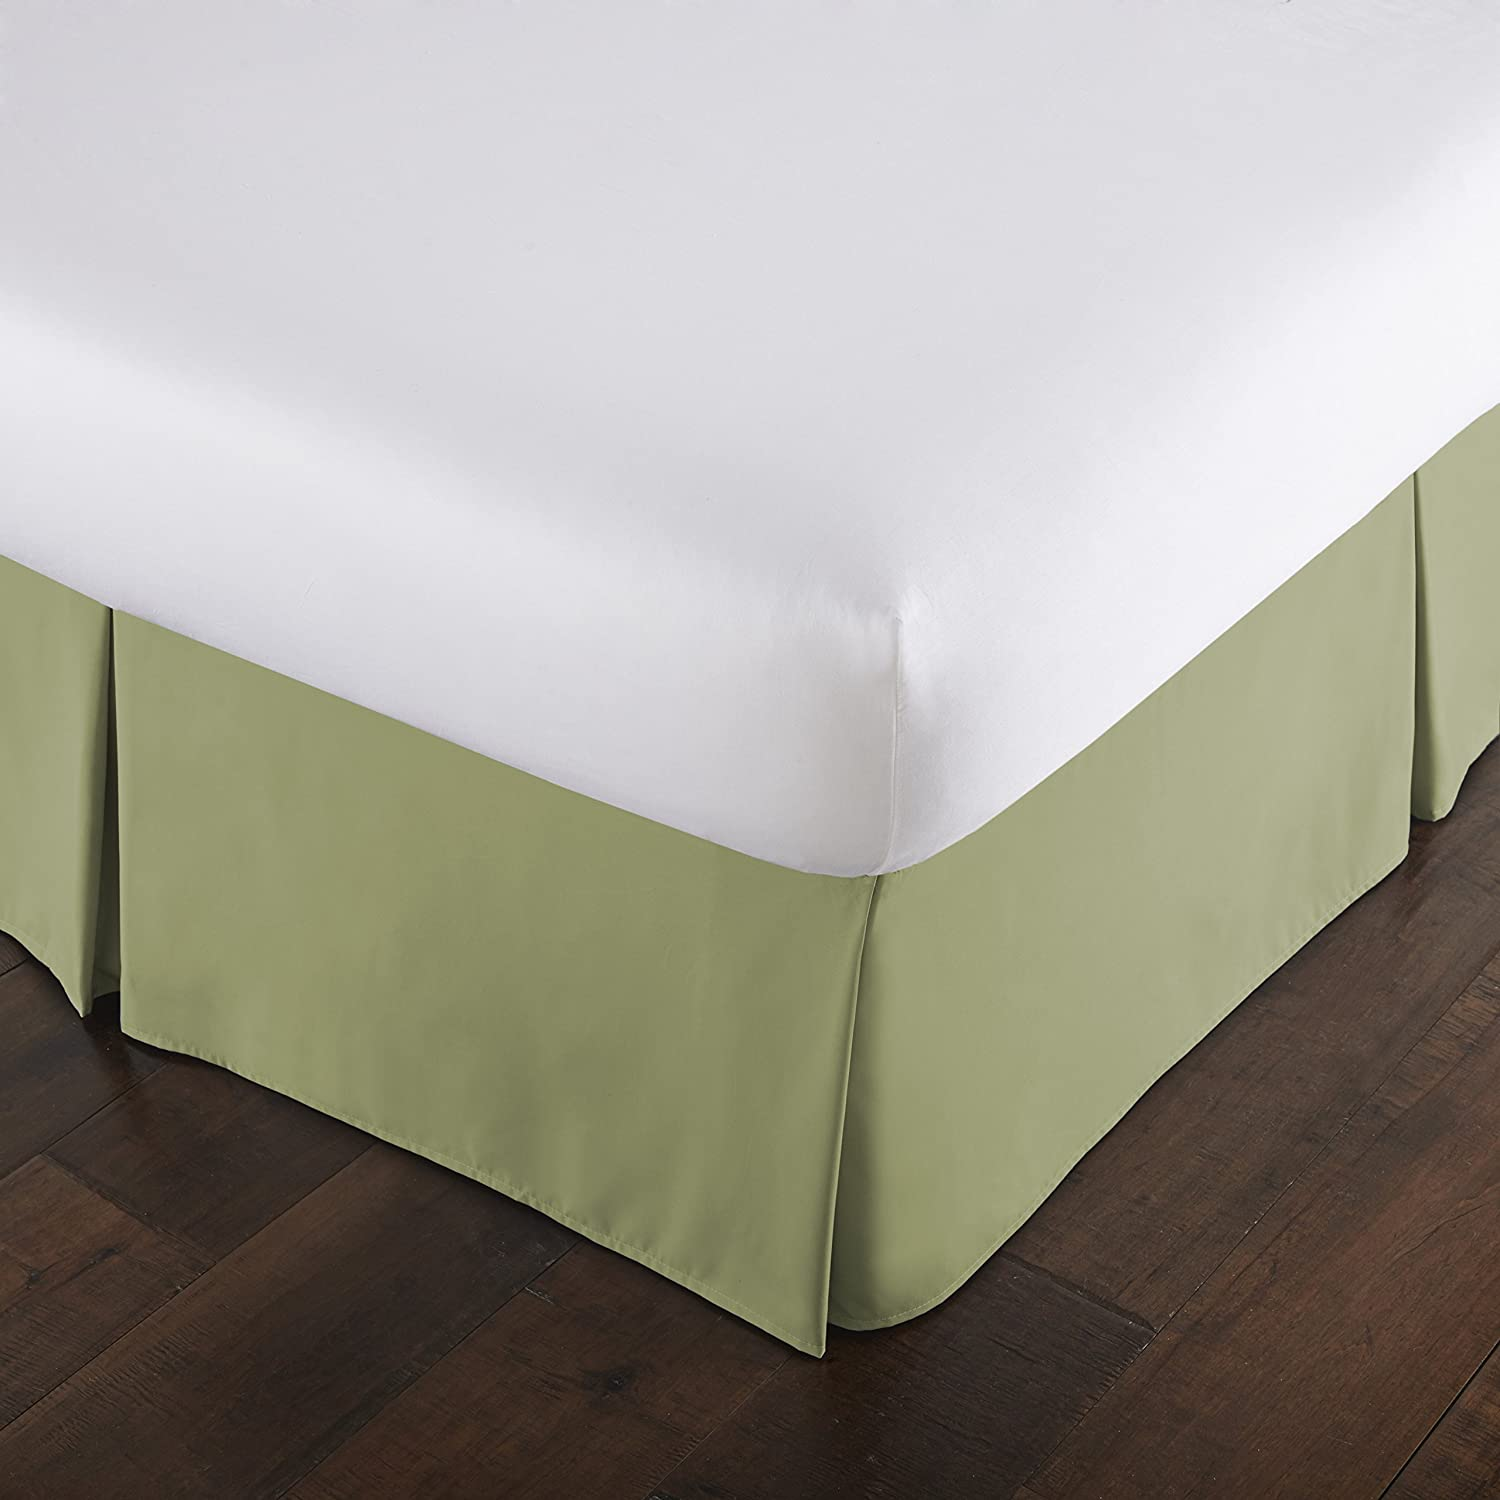 Southshore Fine Linens - VILANO Springs - 15 inch Drop Pleated Bed Skirt, Sage Green, Twin